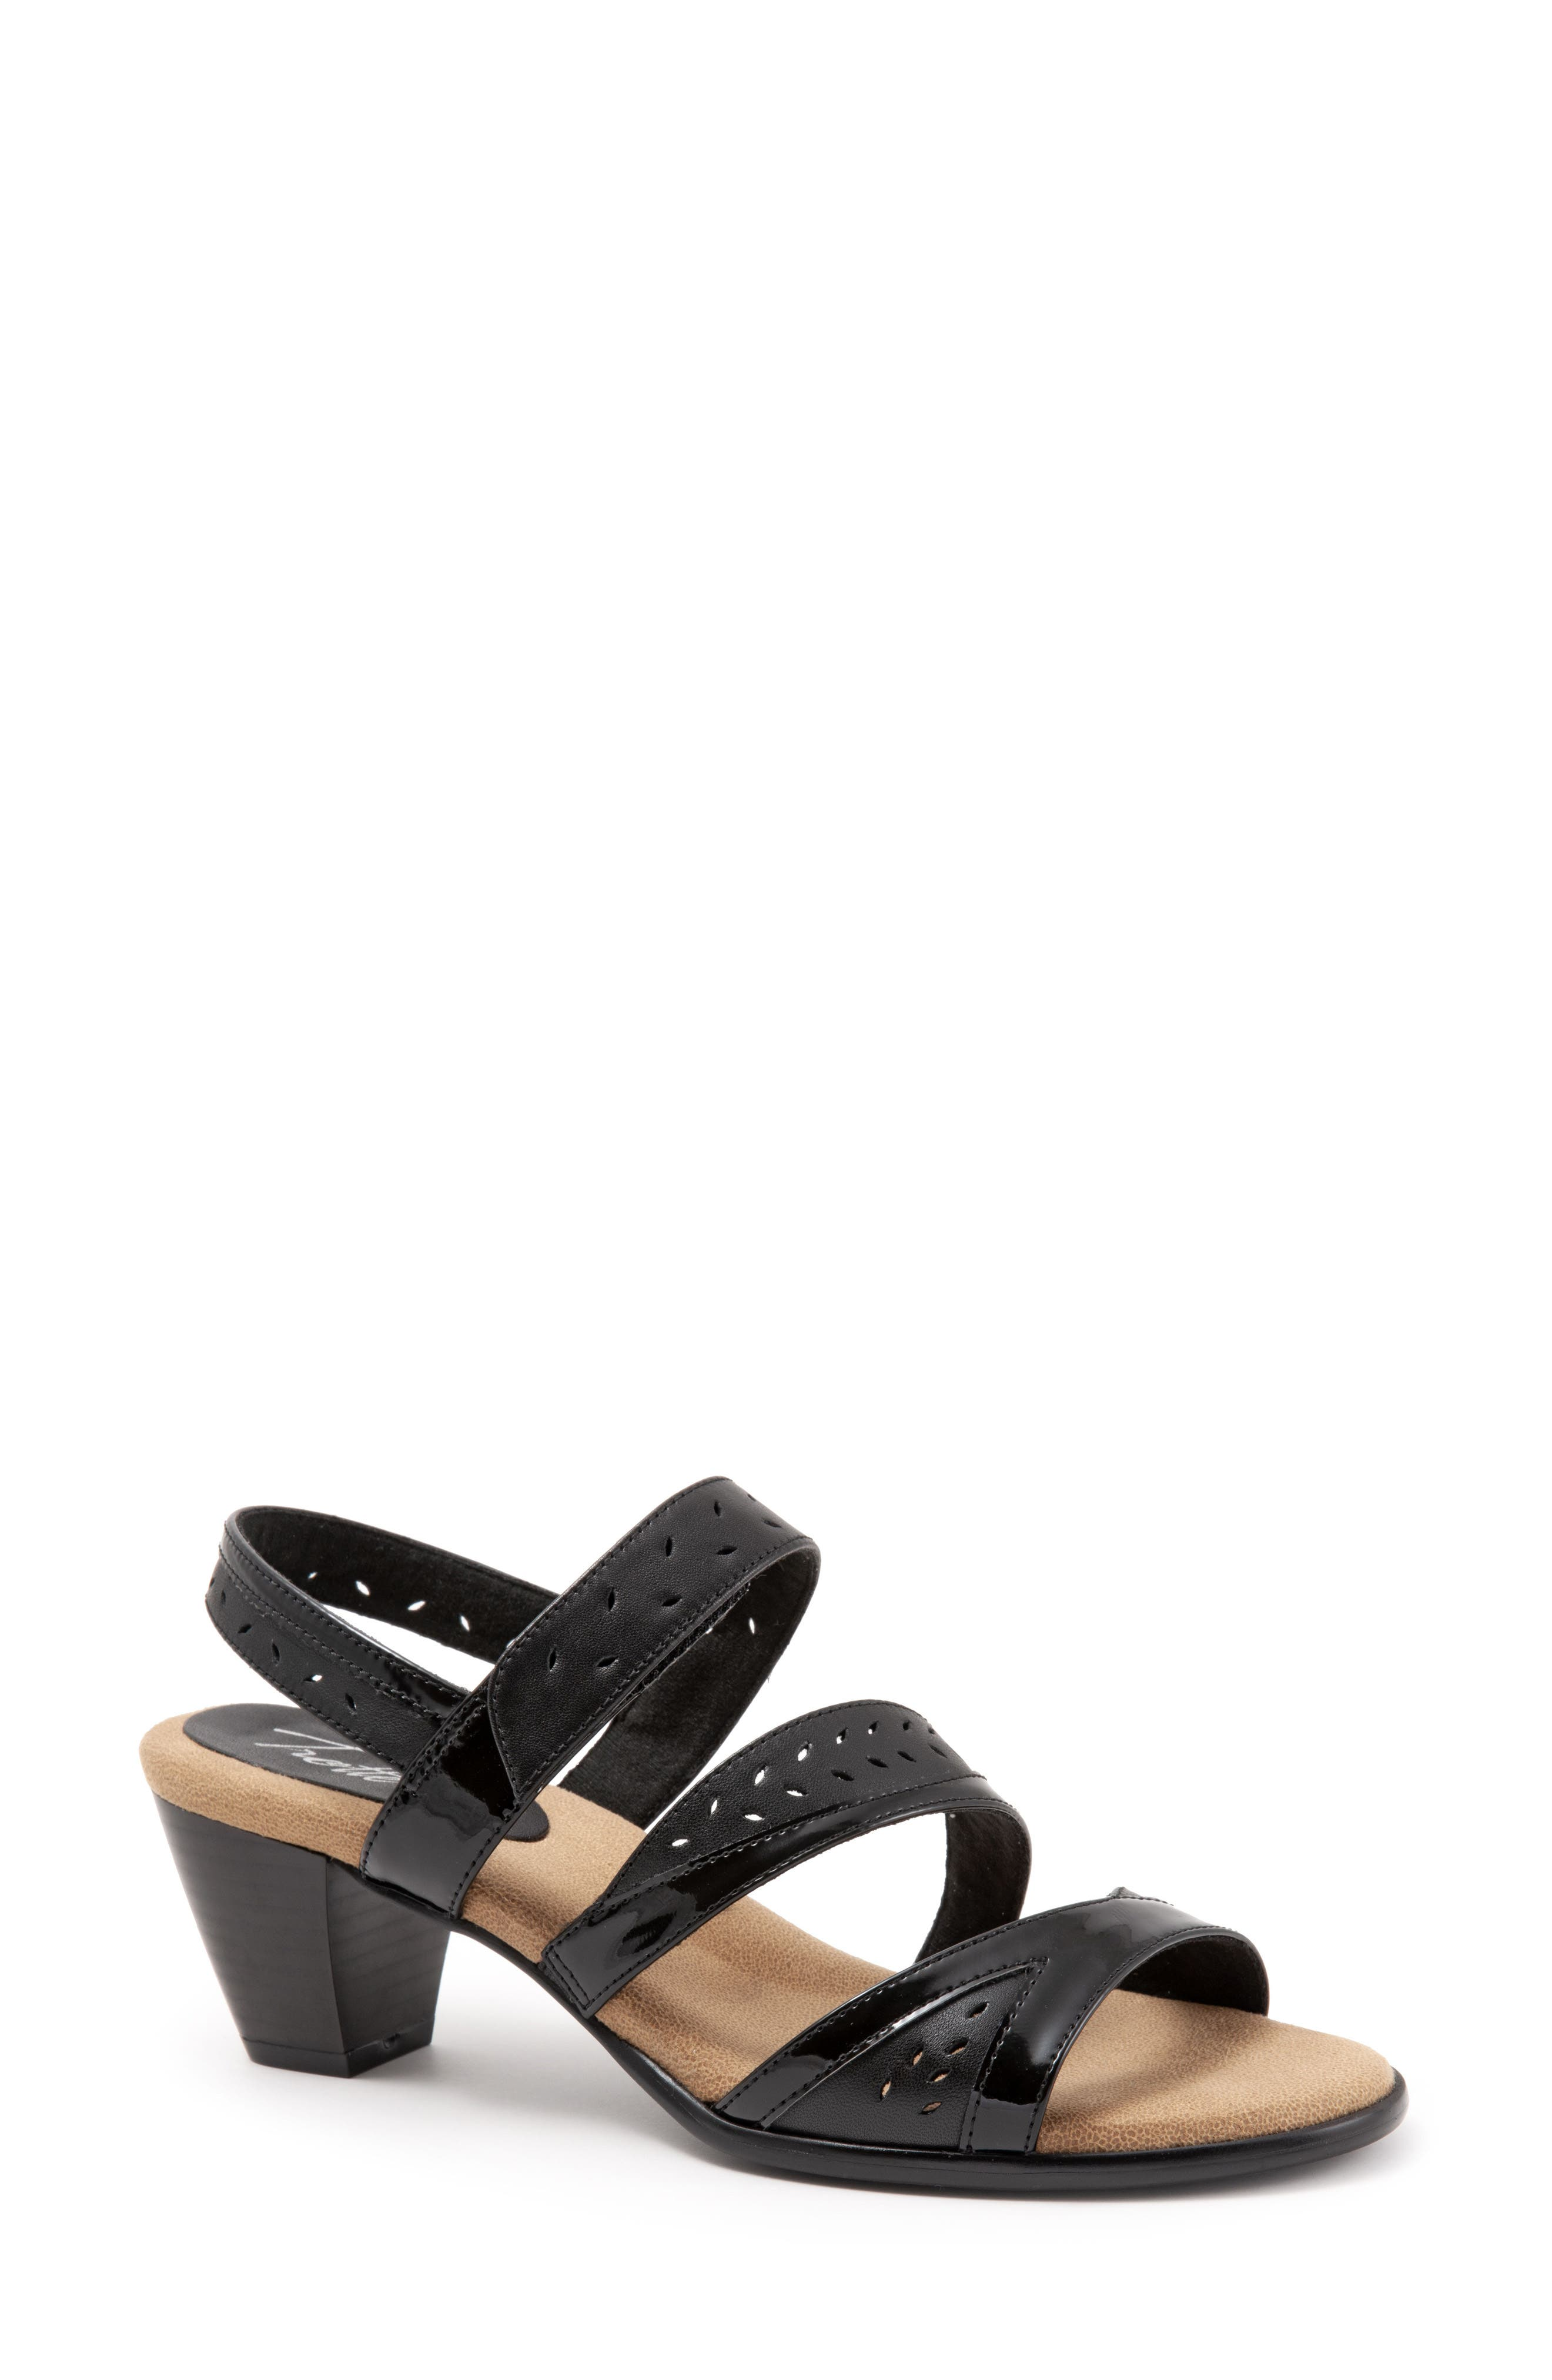 TROTTERS, Marvie Perforated Strappy Sandal, Main thumbnail 1, color, BLACK LEATHER